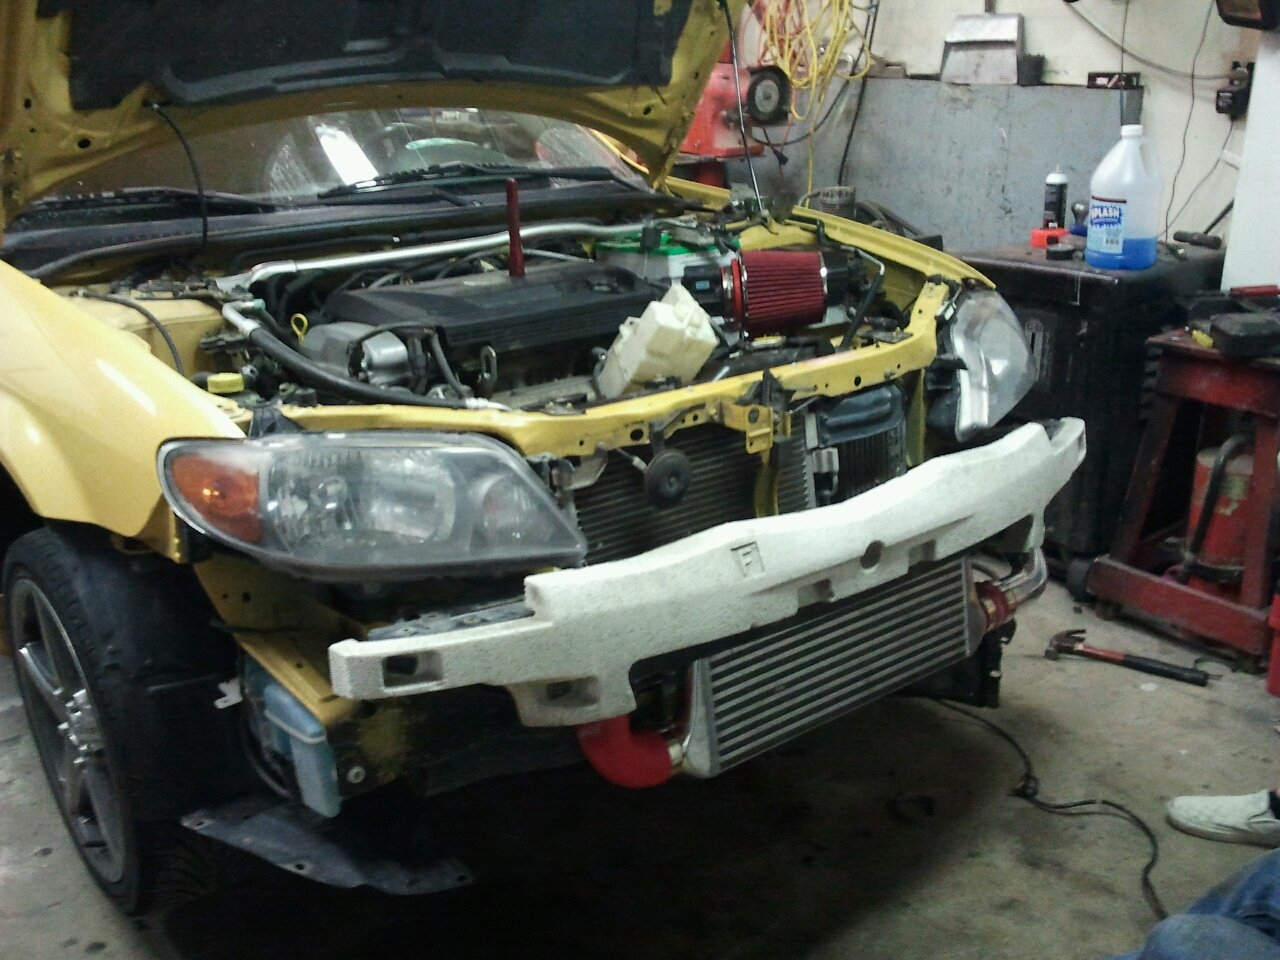 Another Protspeed27 2003 Mazda Protege post... - 15064703